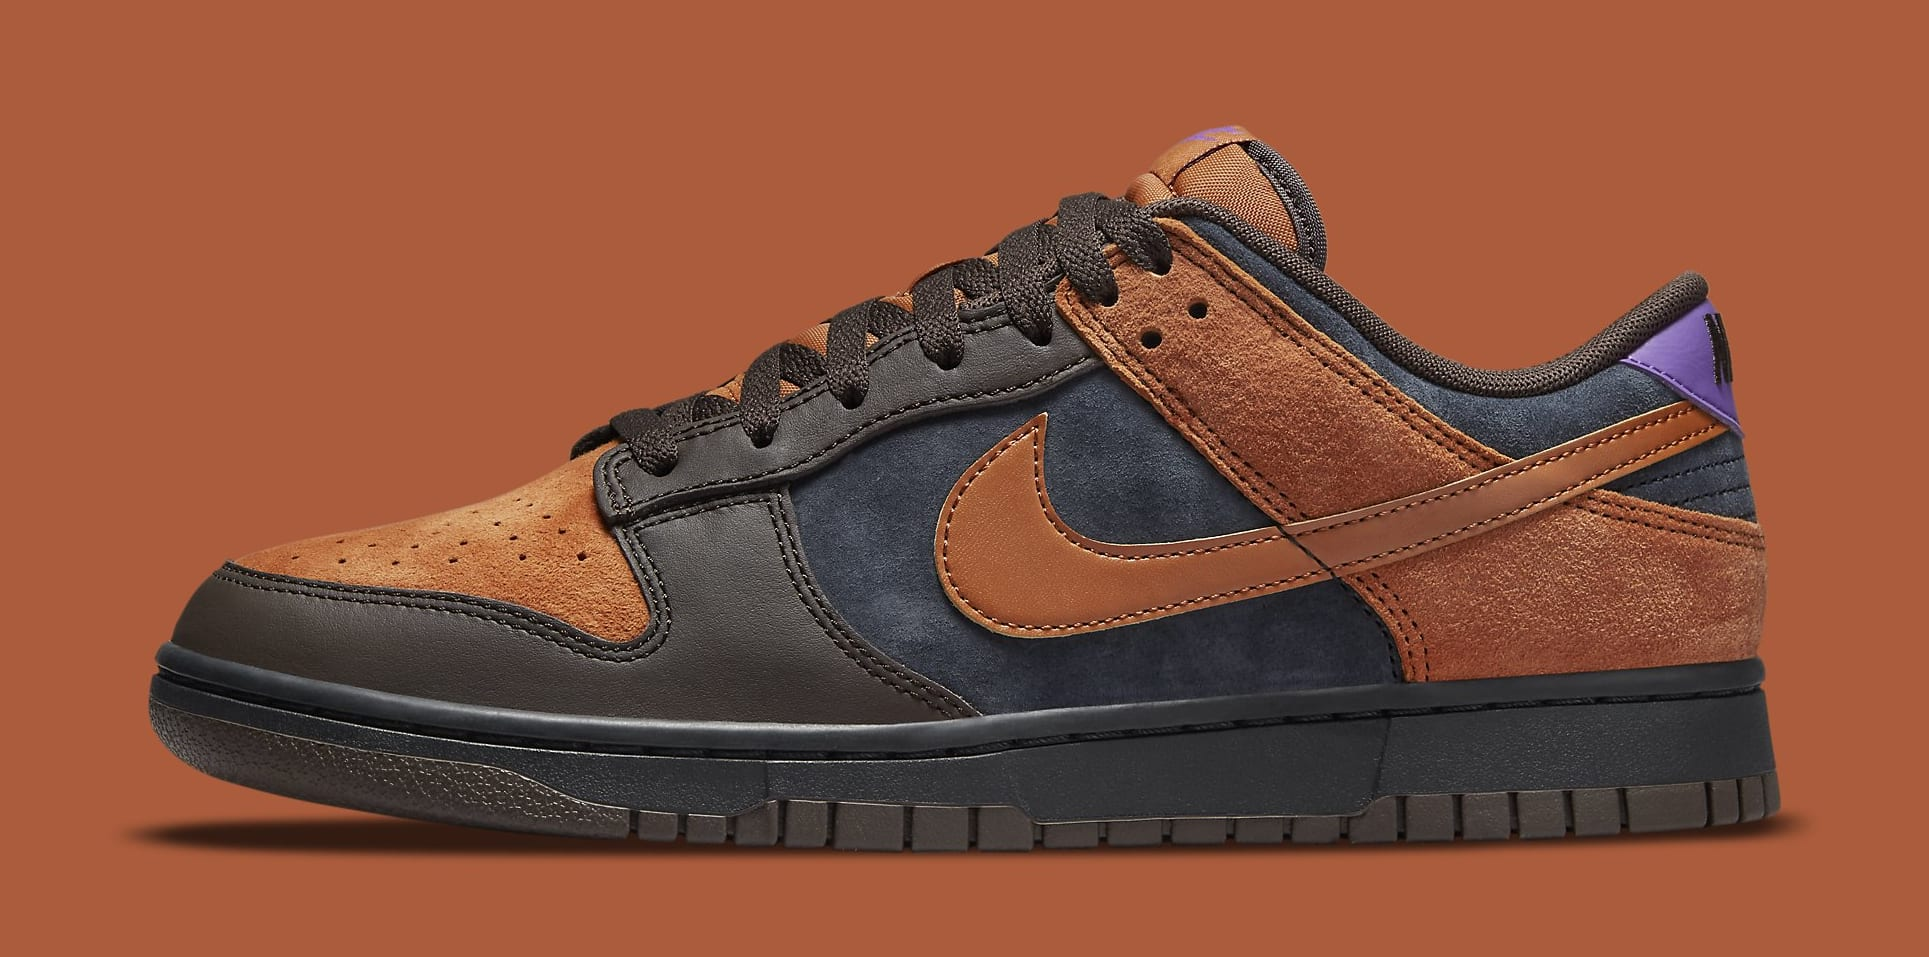 Nike Dunk Low PRM 'Cider' DH0601-001 Lateral